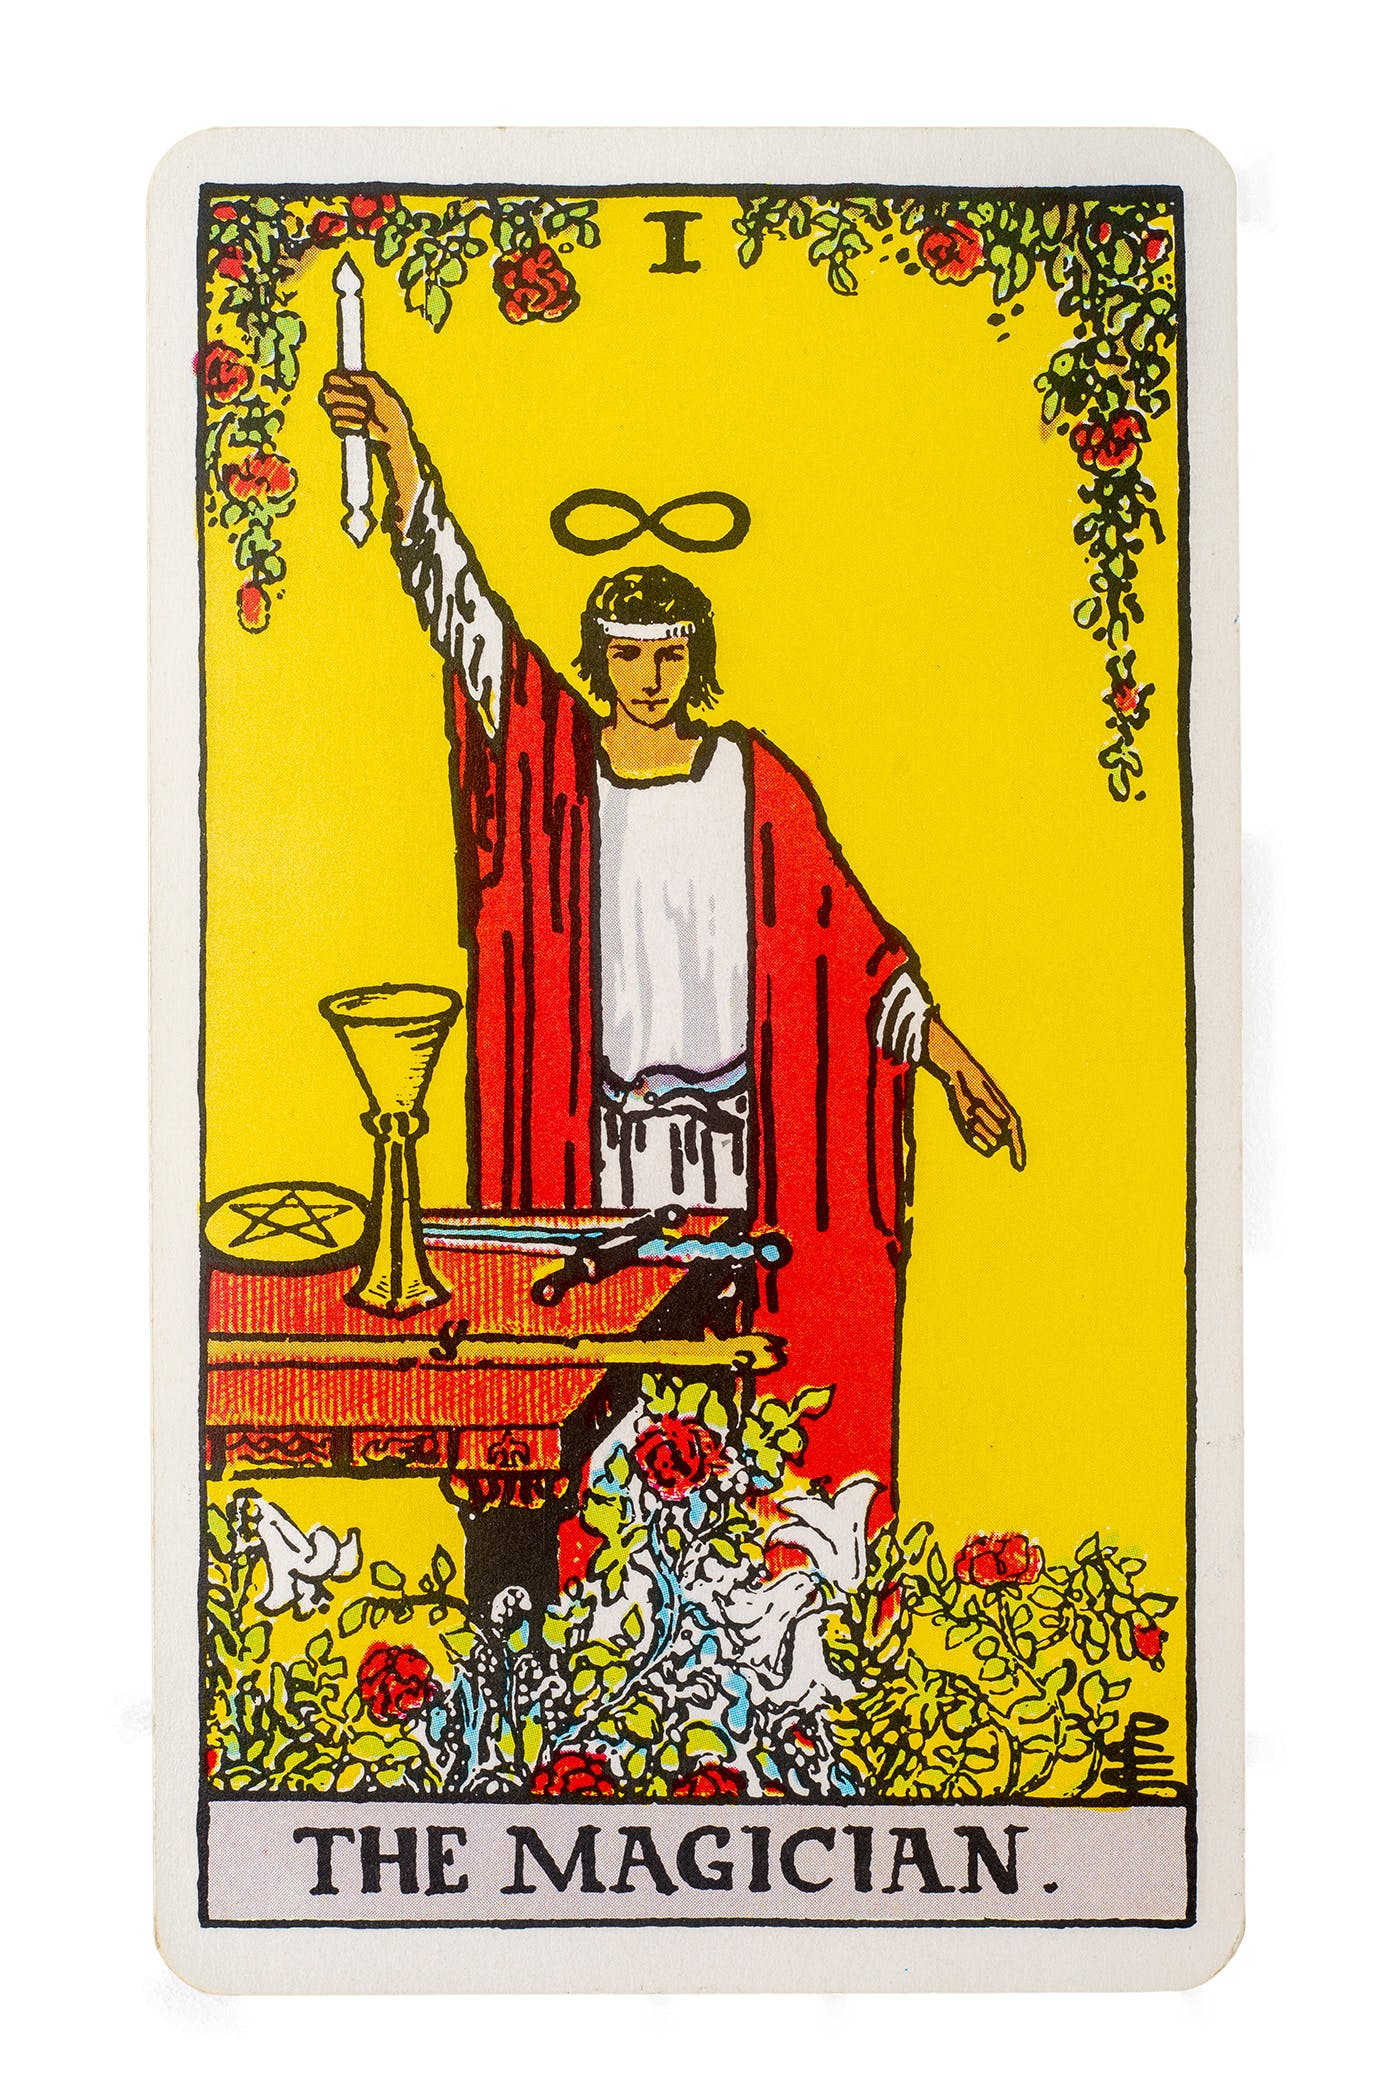 The magician card from the Rider-Waite deck. Features an image of a person standing in front of an alter with their hand raised and holding a double ended candle.